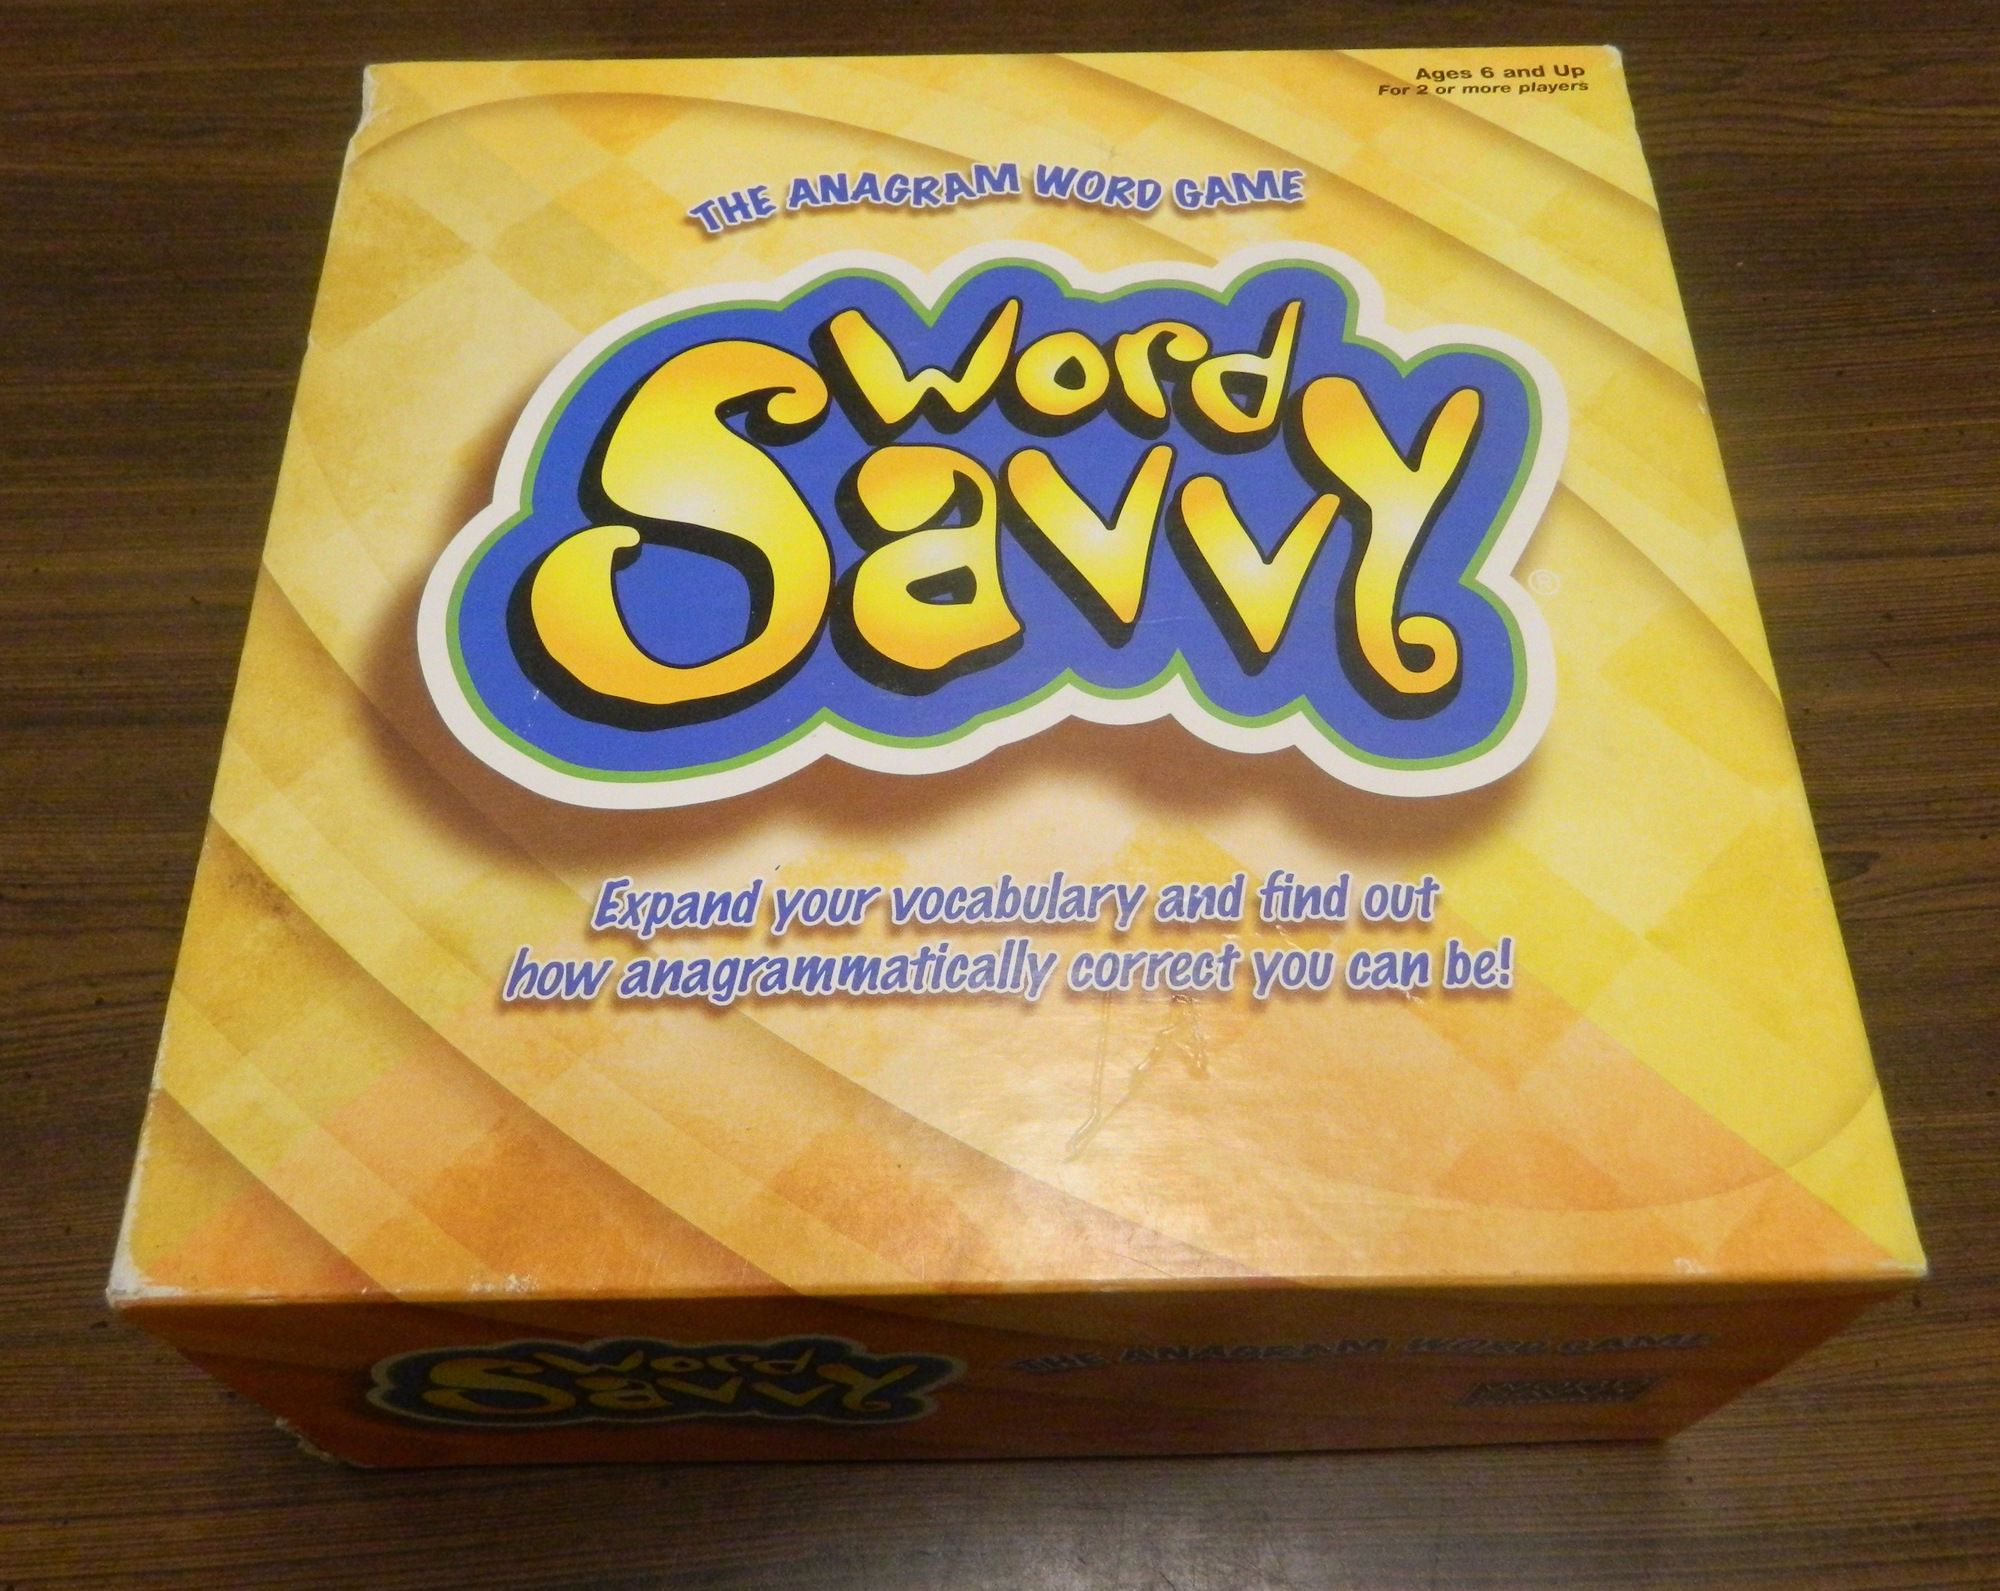 Box for Word Savvy